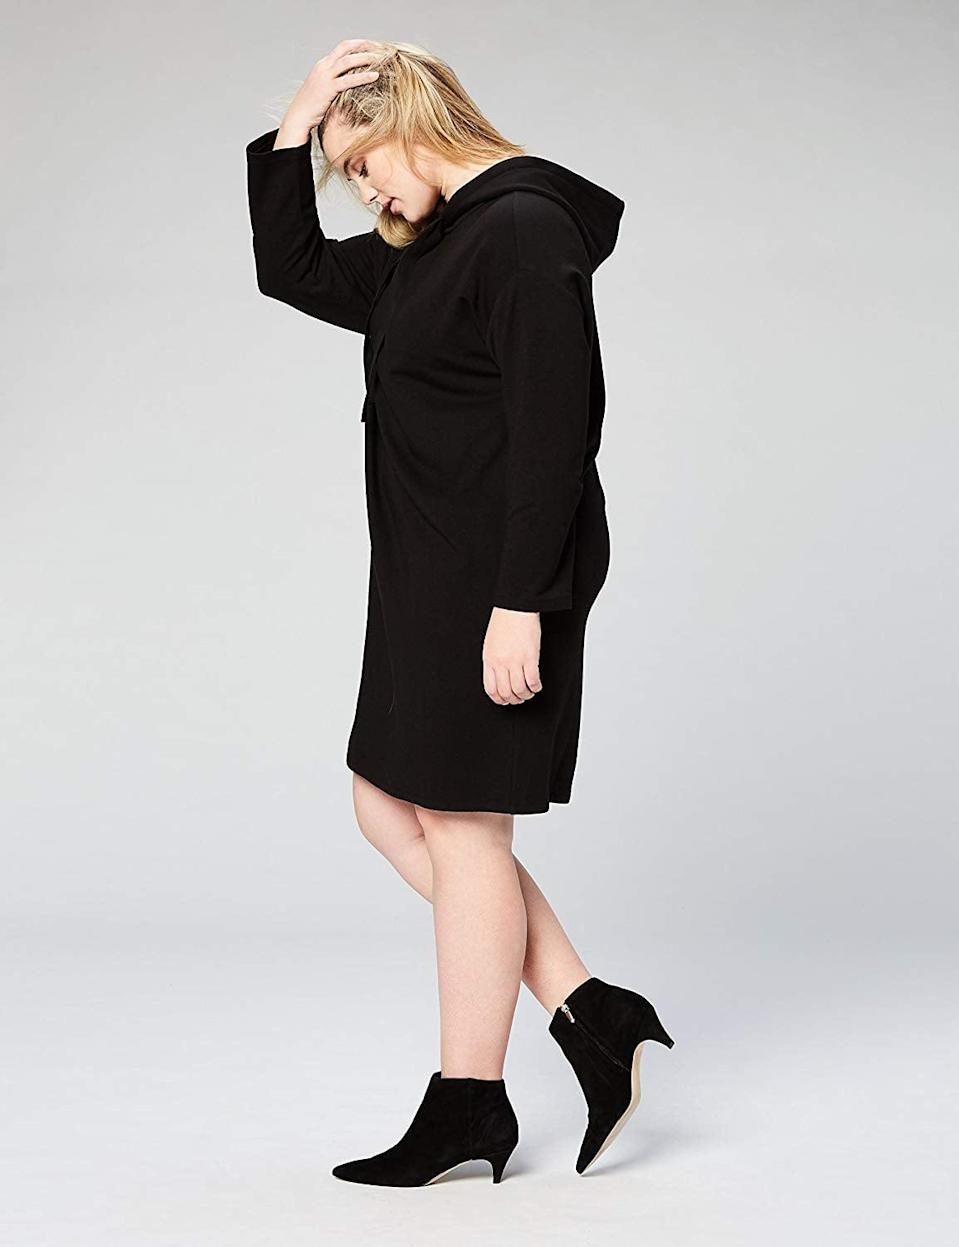 """<p>Style this <a href=""""https://www.popsugar.com/buy/Daily-Ritual-Women-Terry-Cotton-Sweatshirt-Dress-507386?p_name=Daily%20Ritual%20Women%27s%20Terry%20Cotton%20Sweatshirt%20Dress&retailer=amazon.com&pid=507386&price=30&evar1=fab%3Aus&evar9=46310389&evar98=https%3A%2F%2Fwww.popsugar.com%2Ffashion%2Fphoto-gallery%2F46310389%2Fimage%2F46811997%2FDaily-Ritual-Women-Terry-Cotton-Sweatshirt-Dress&list1=shopping%2Cfall%20fashion%2Camazon%2Csummer%20fashion%2C50%20under%20%2450%2Caffordable%20shopping&prop13=mobile&pdata=1"""" rel=""""nofollow noopener"""" class=""""link rapid-noclick-resp"""" target=""""_blank"""" data-ylk=""""slk:Daily Ritual Women's Terry Cotton Sweatshirt Dress"""">Daily Ritual Women's Terry Cotton Sweatshirt Dress</a> ($30) with your favorite sneakers.</p>"""